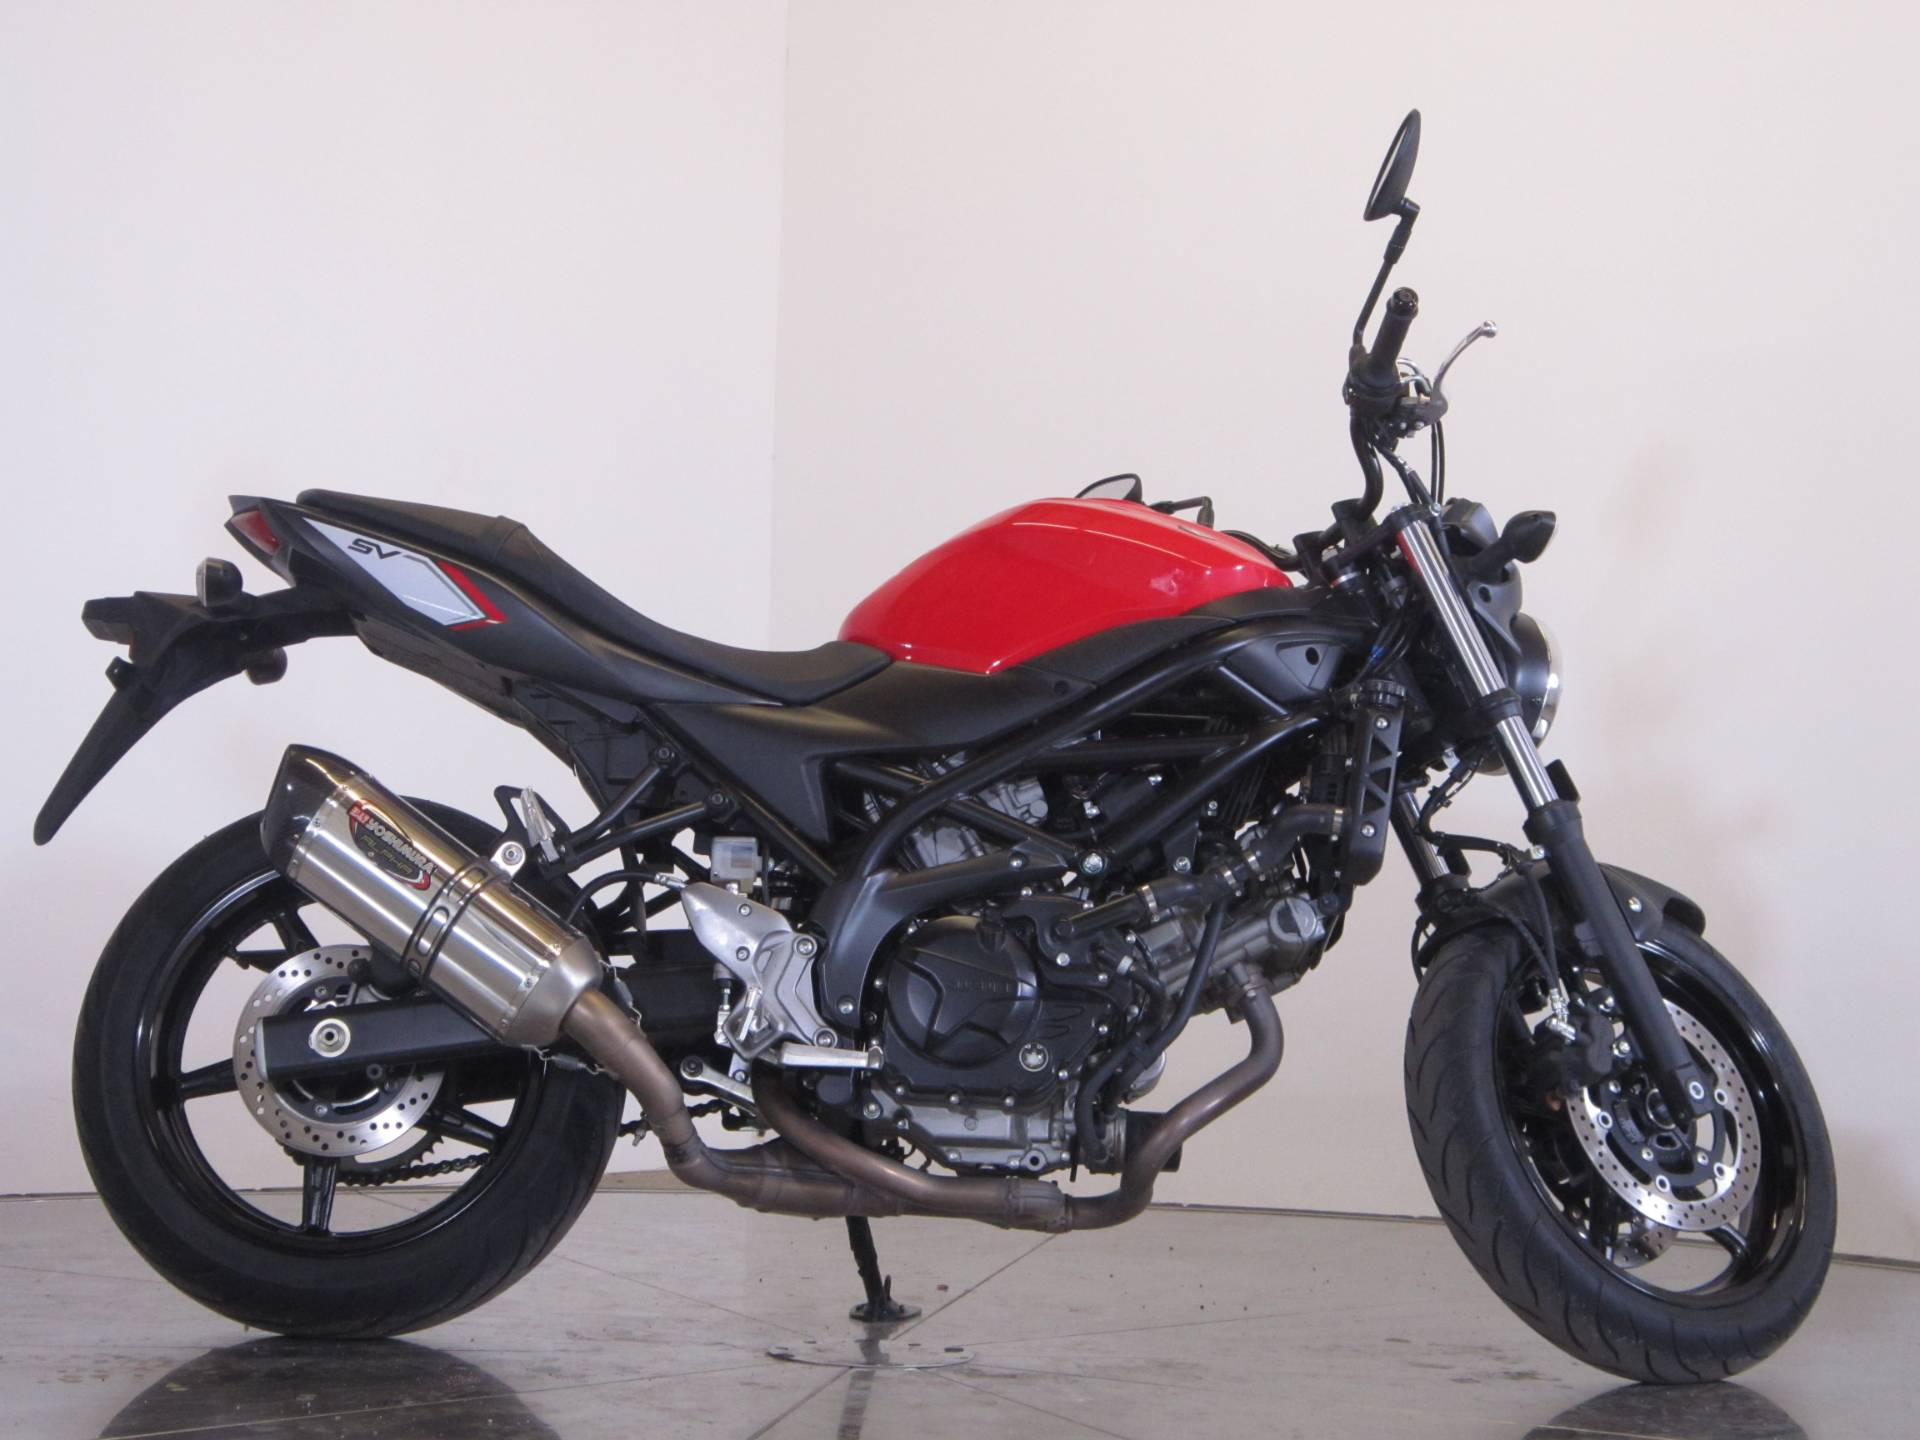 2017 Suzuki SV650 for sale 45170